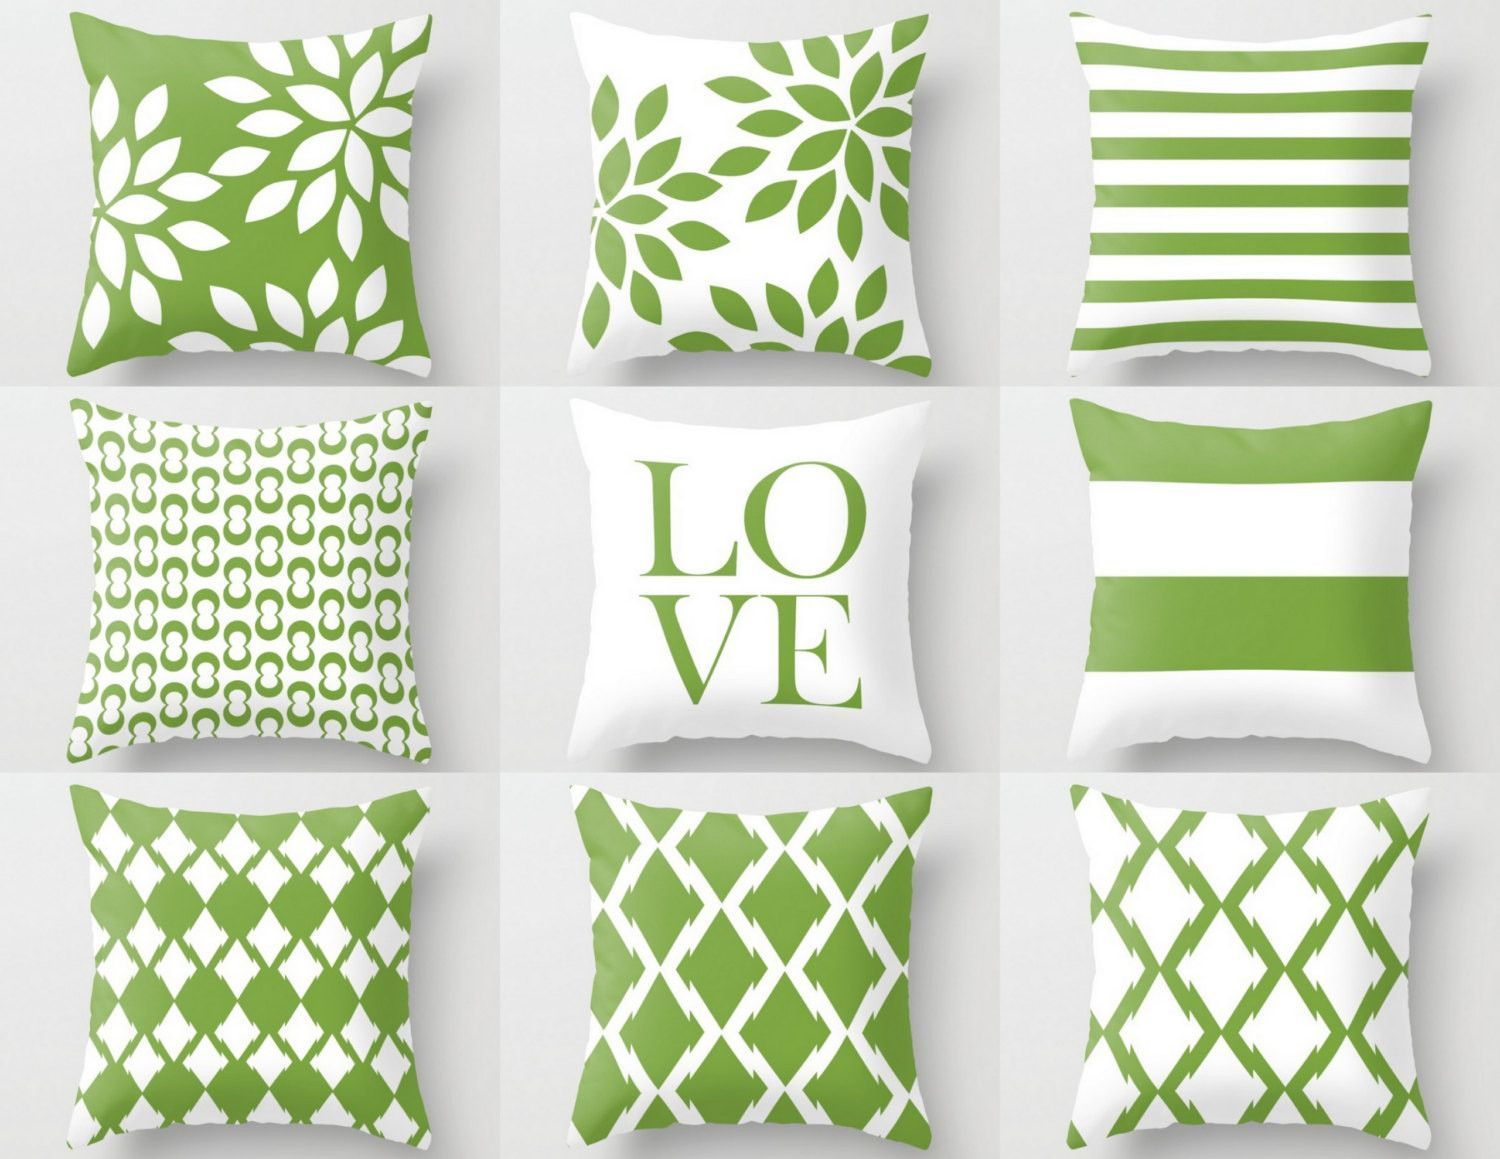 Green White Pillow Cover Rosemary Green Accent Pillows Cushion Cover Decorative Pillows Almofadas Criativas Almofadas Decorativas Almofadas